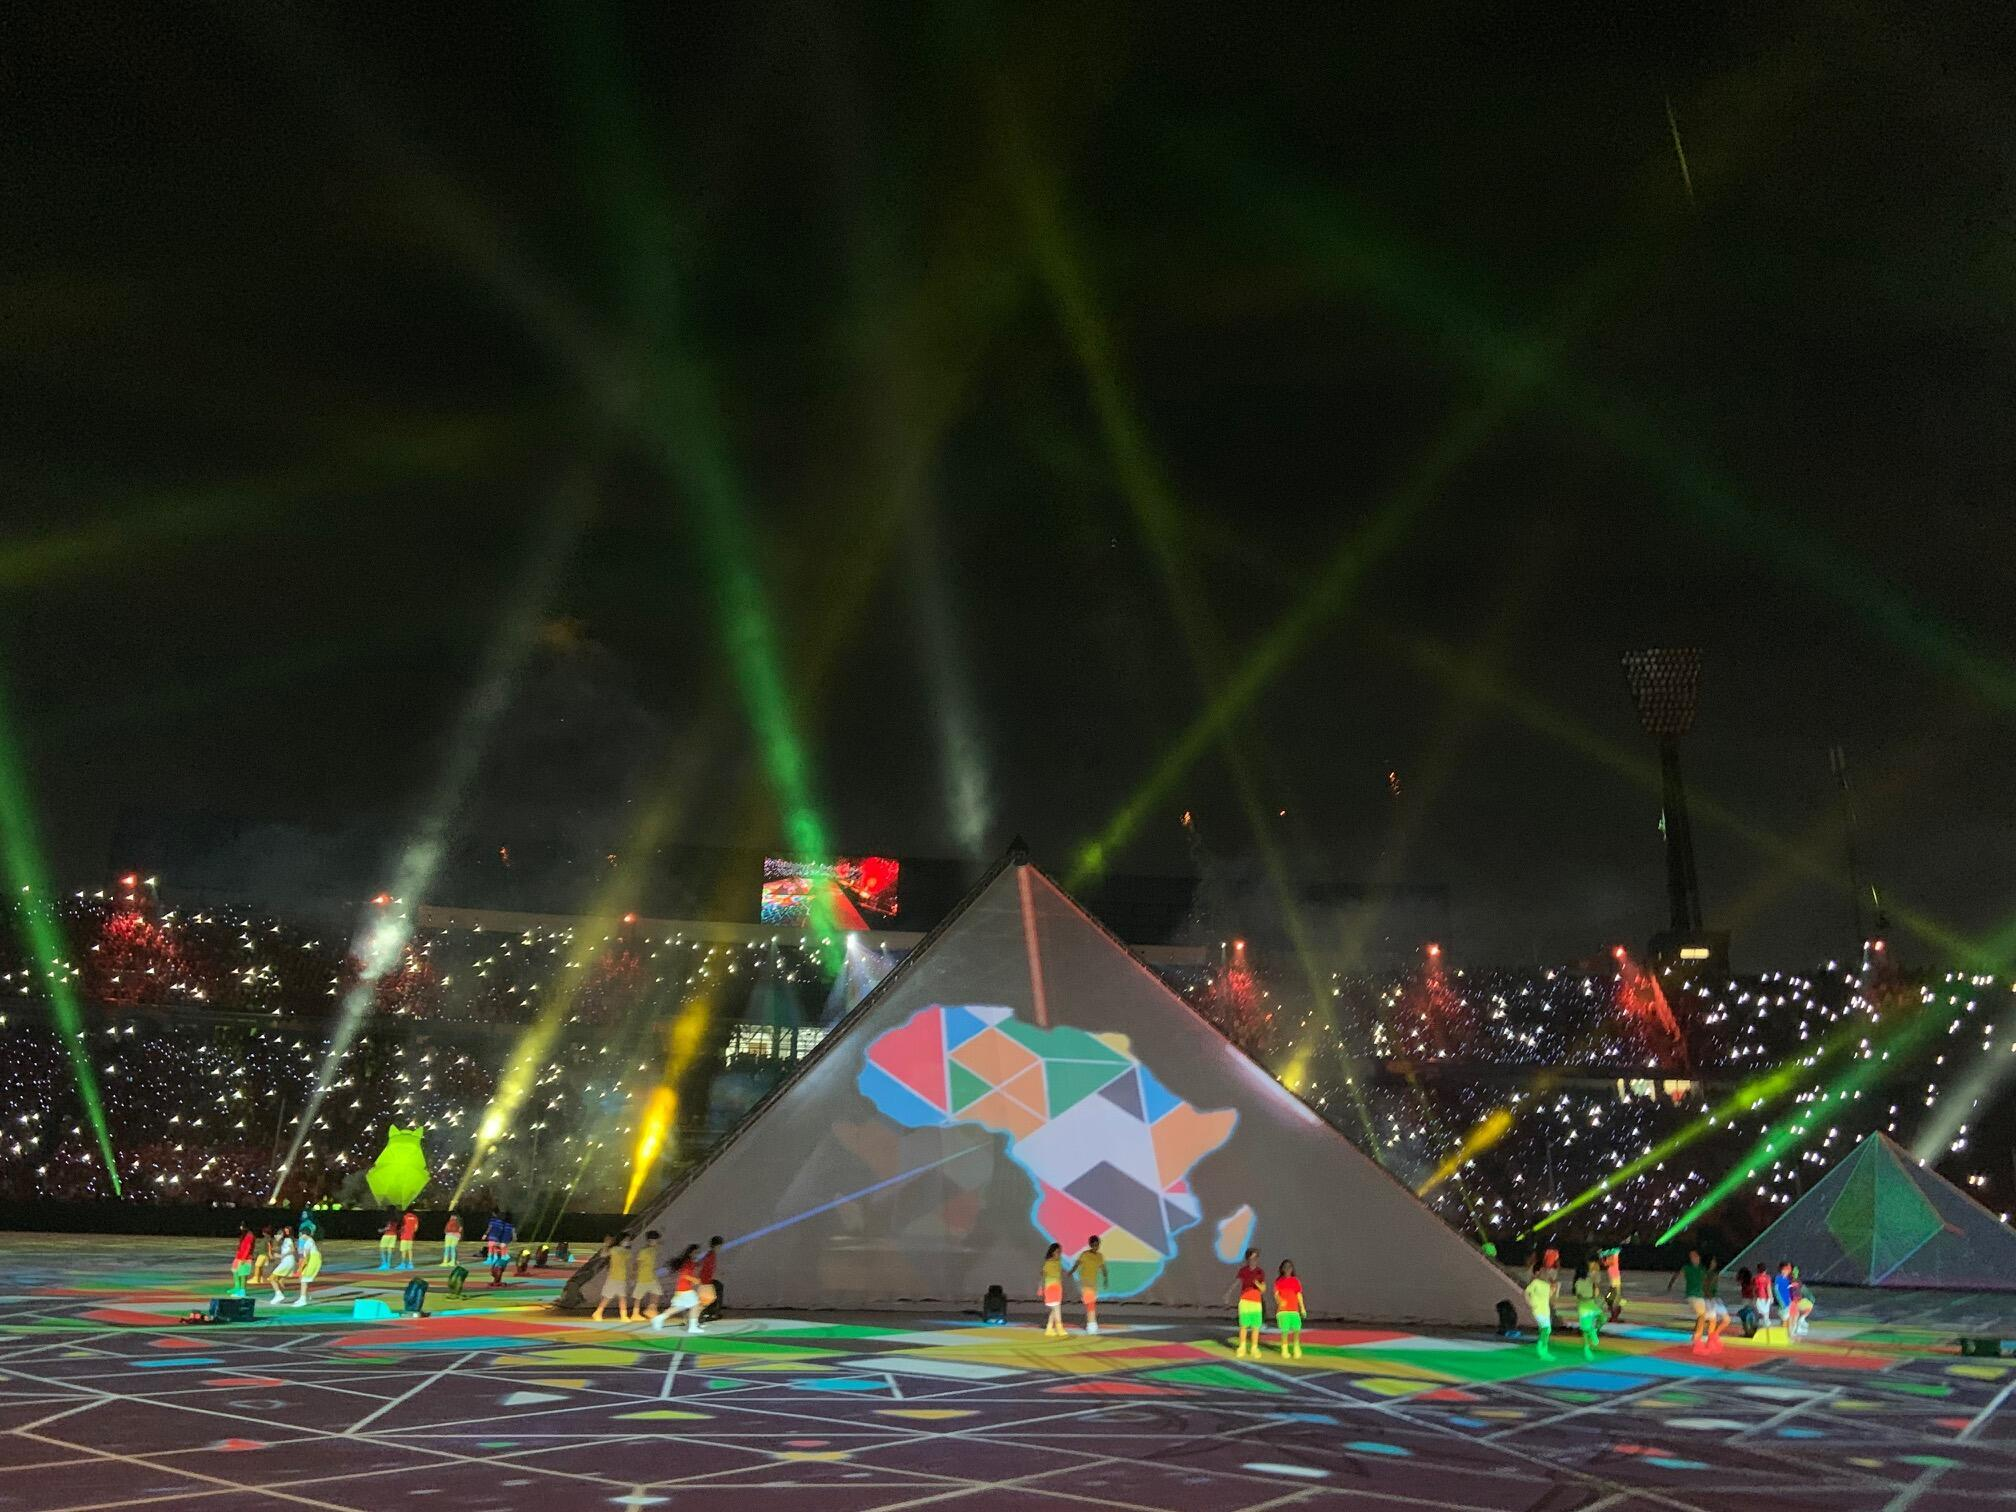 More than 70,000 fans packed into the Cairo International Stadium for the opening ceremony and Egypt's first game against Zimbabwe.